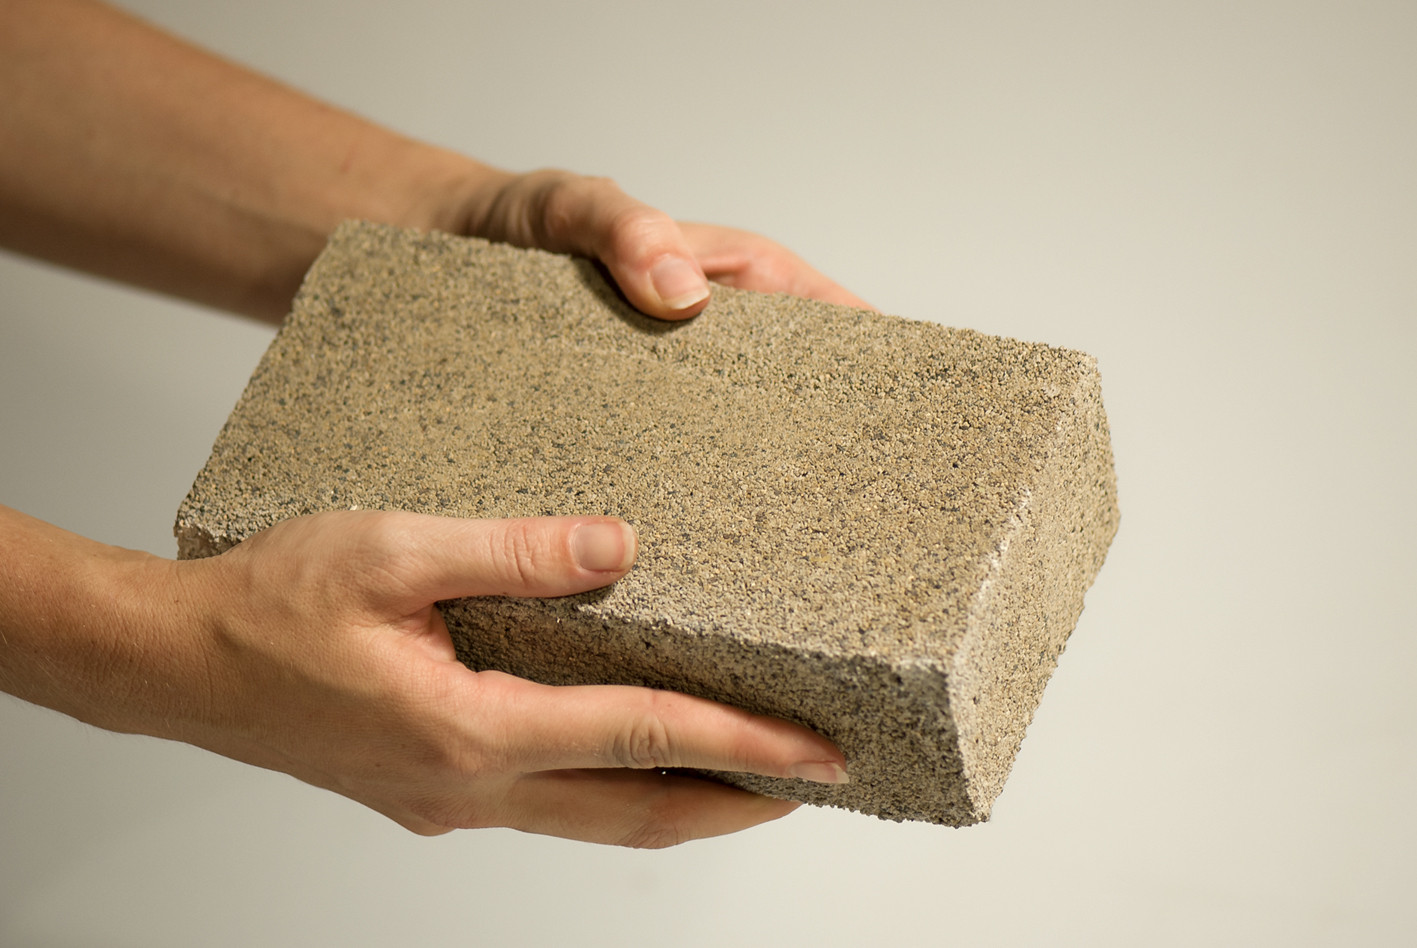 Finalists Create Next Generation of Sustainable Building Products